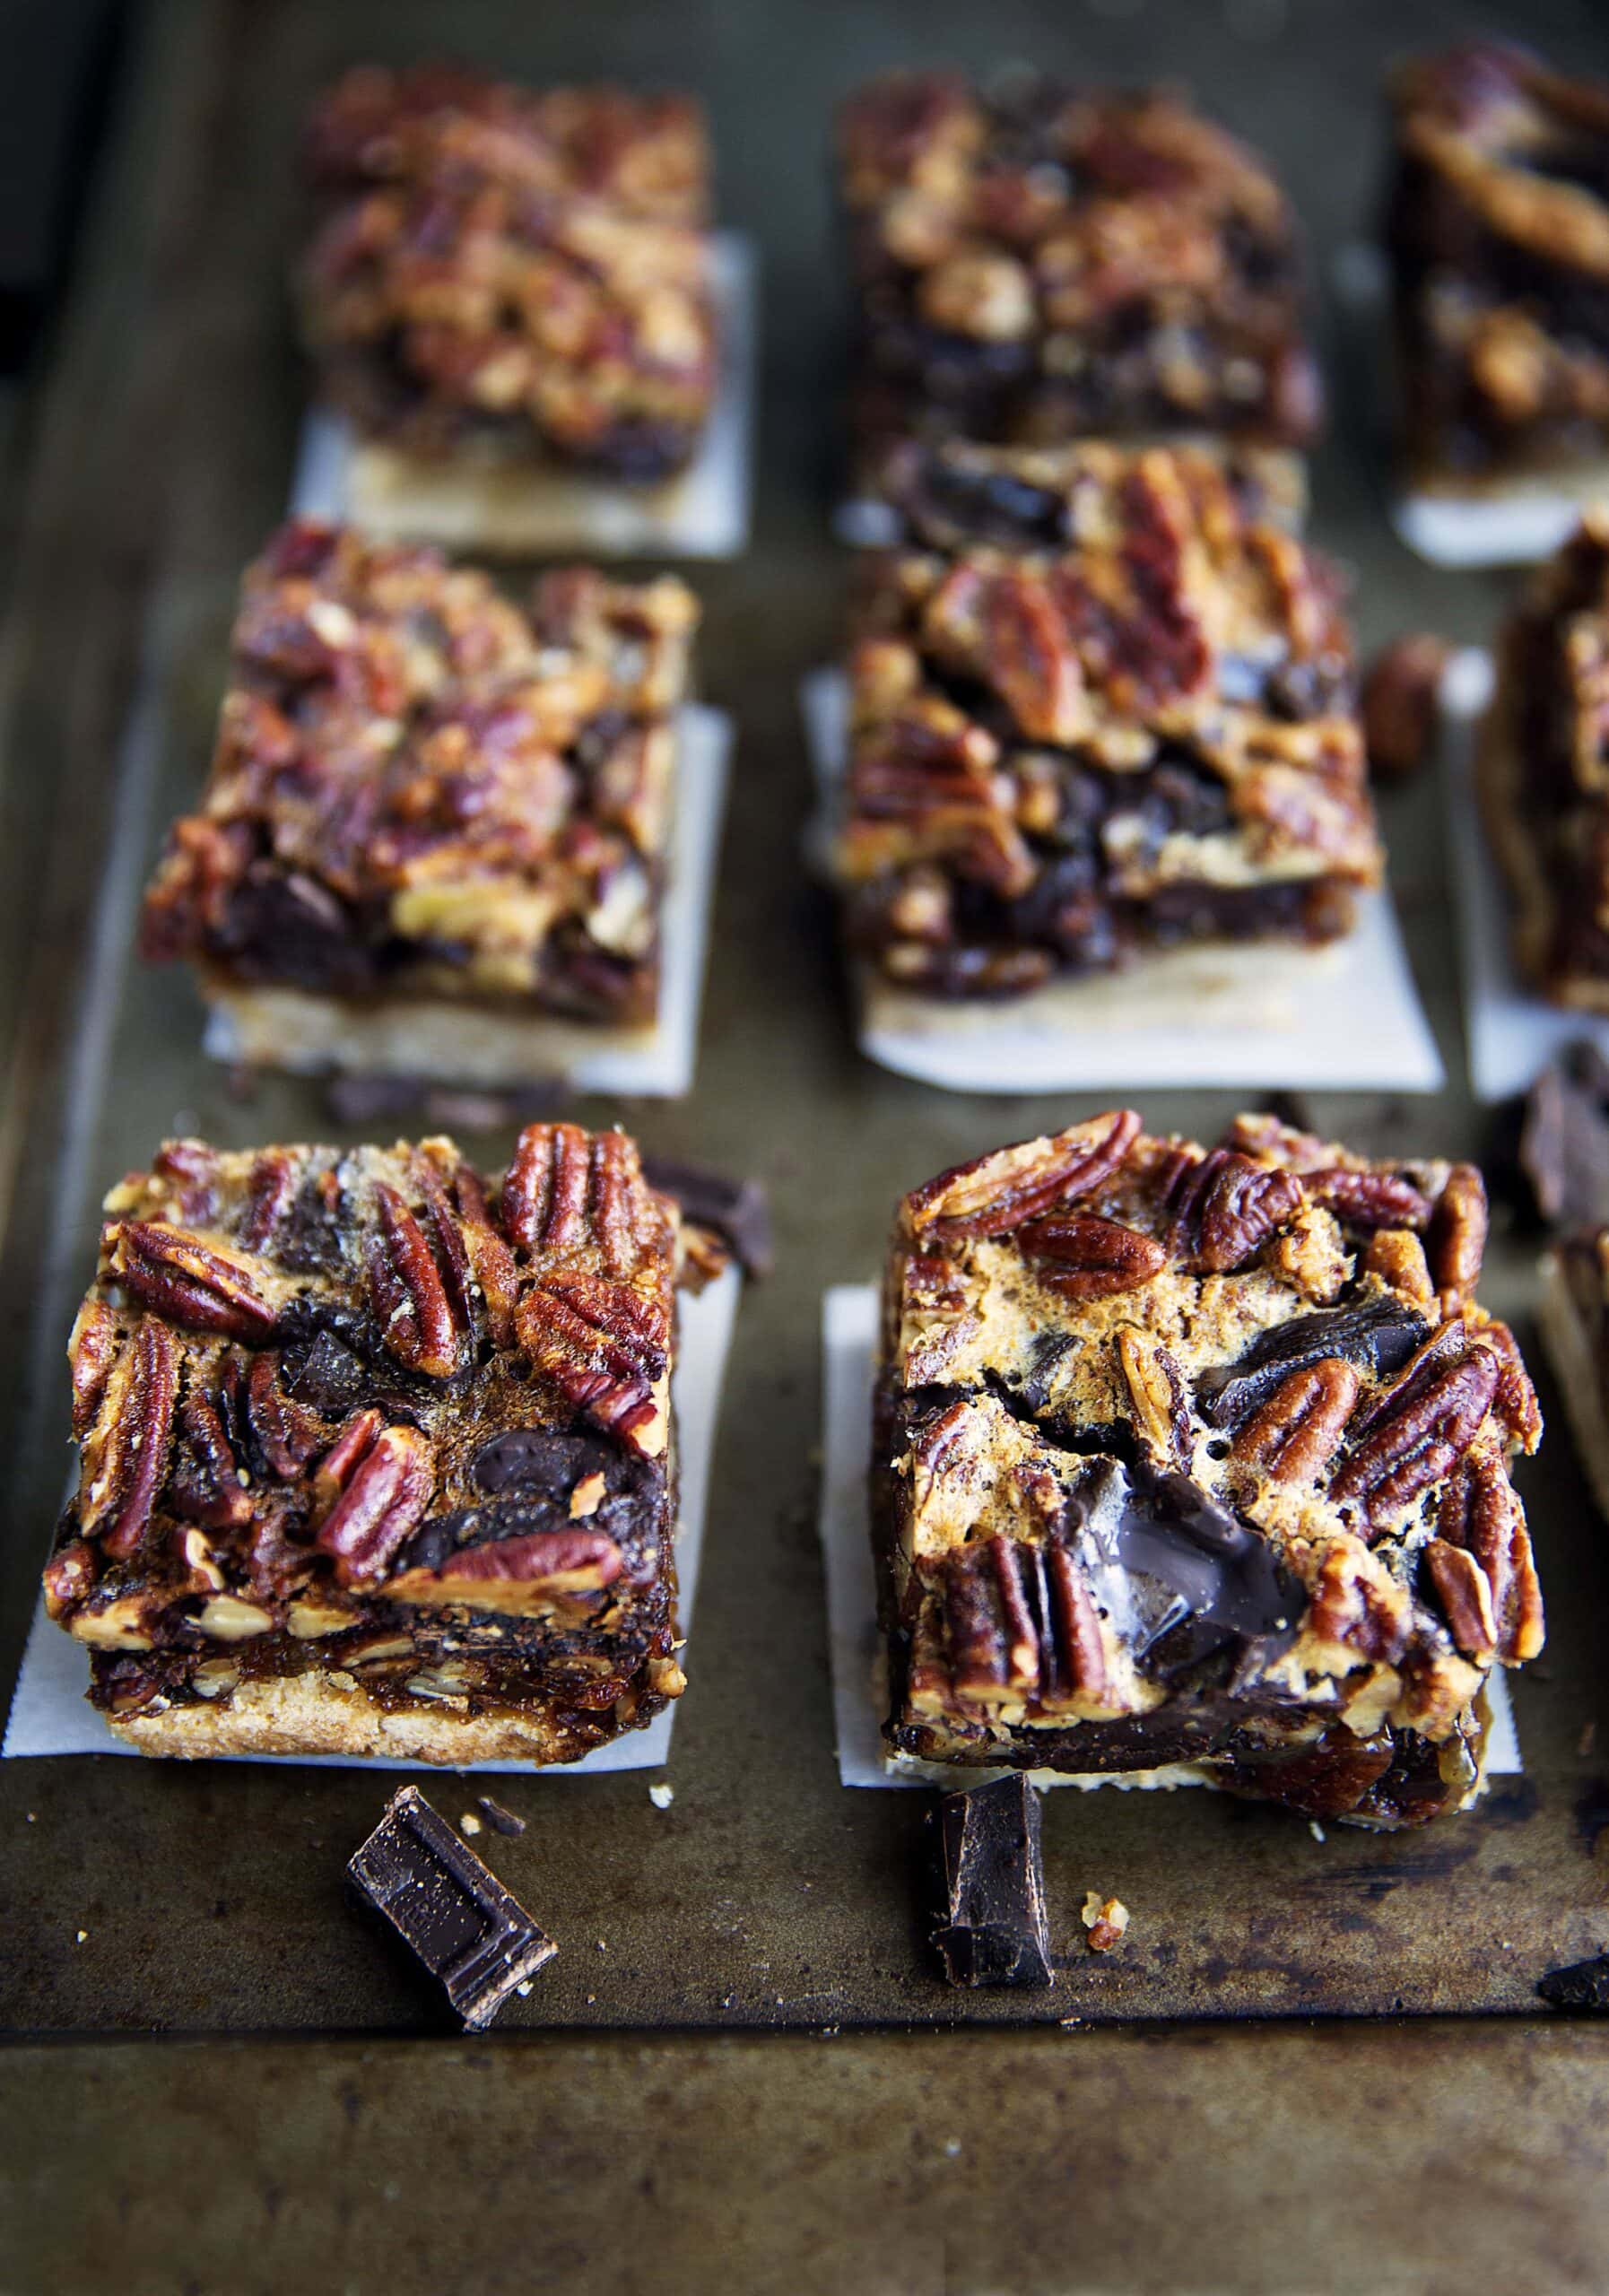 Thanksgiving is just around the corner. These Bourbon Chocolate Pecan Pie Bars will become your family's favorite recipe for years to come! | via Broma Bakery | #pecanpie #bourbonpecanpie #bars